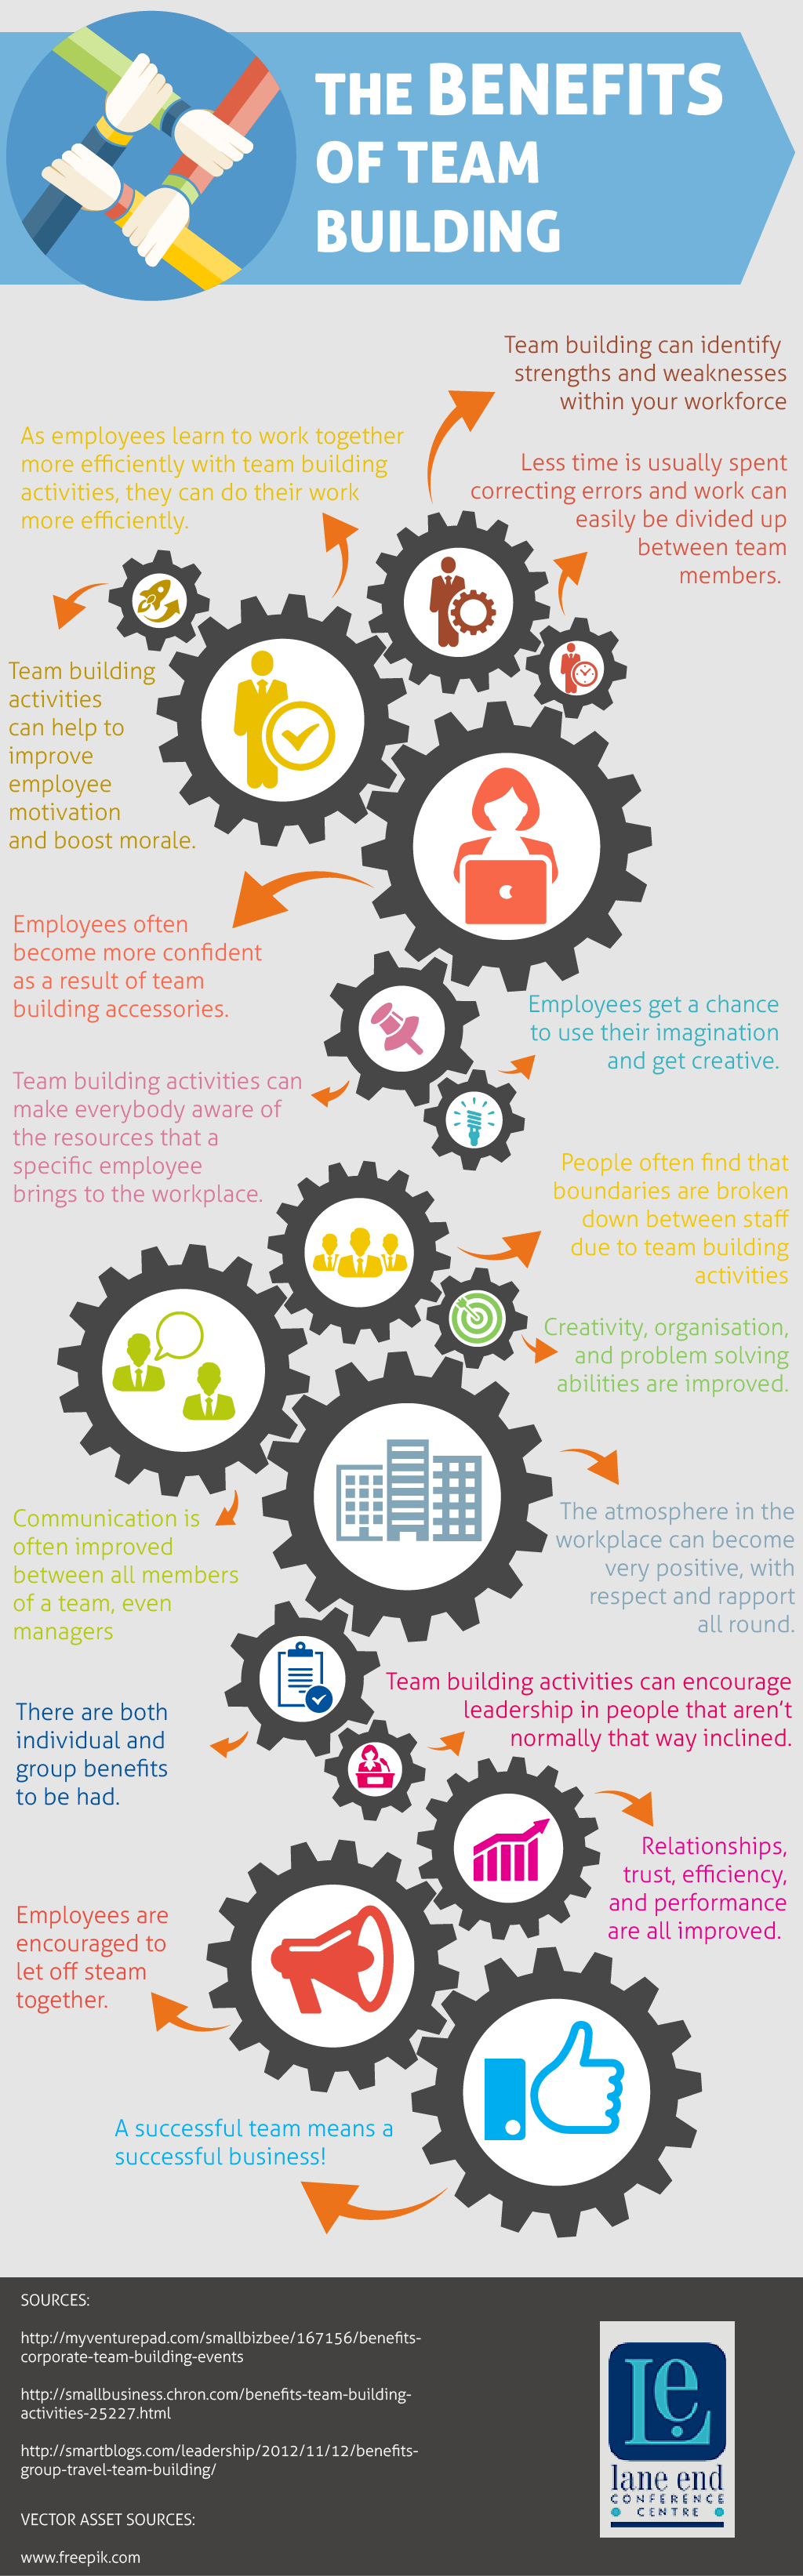 Benefits of Team Building Infographic